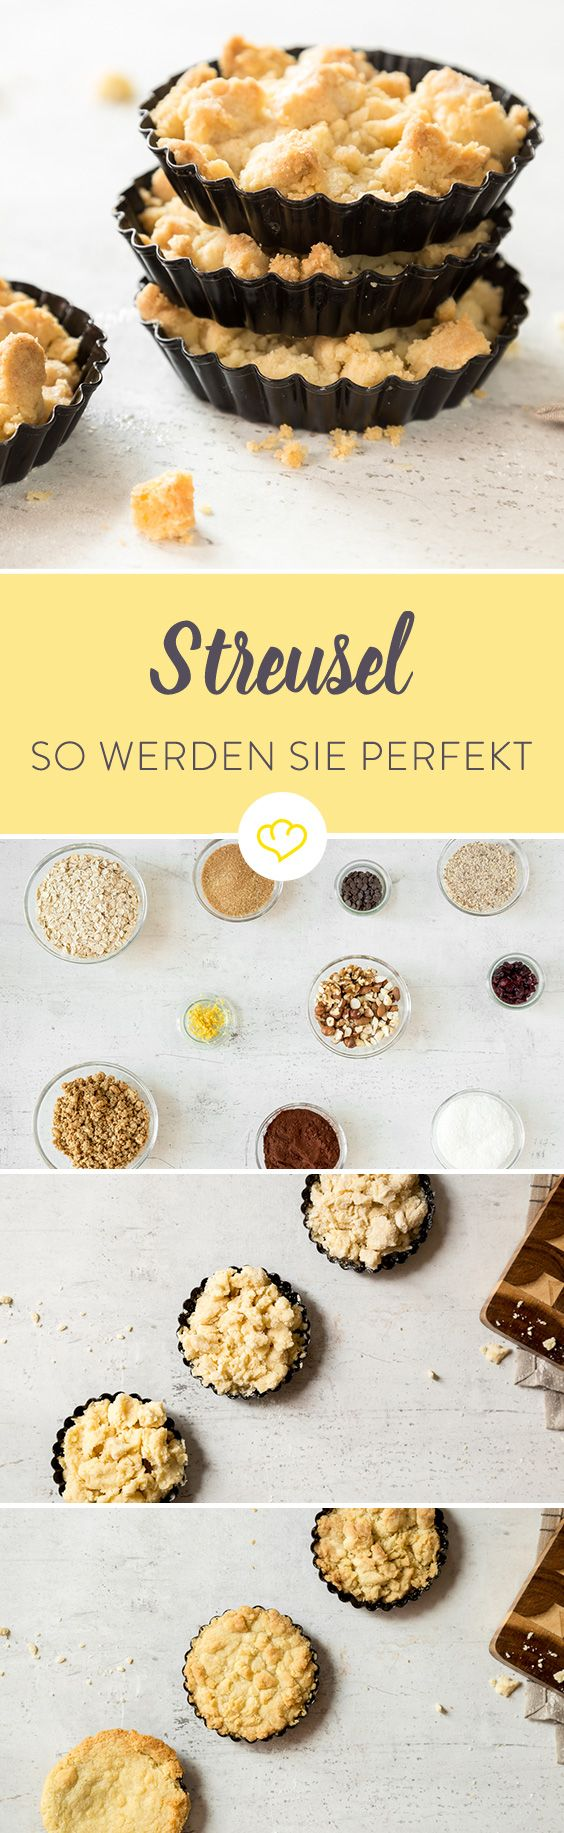 Streusel-Guide